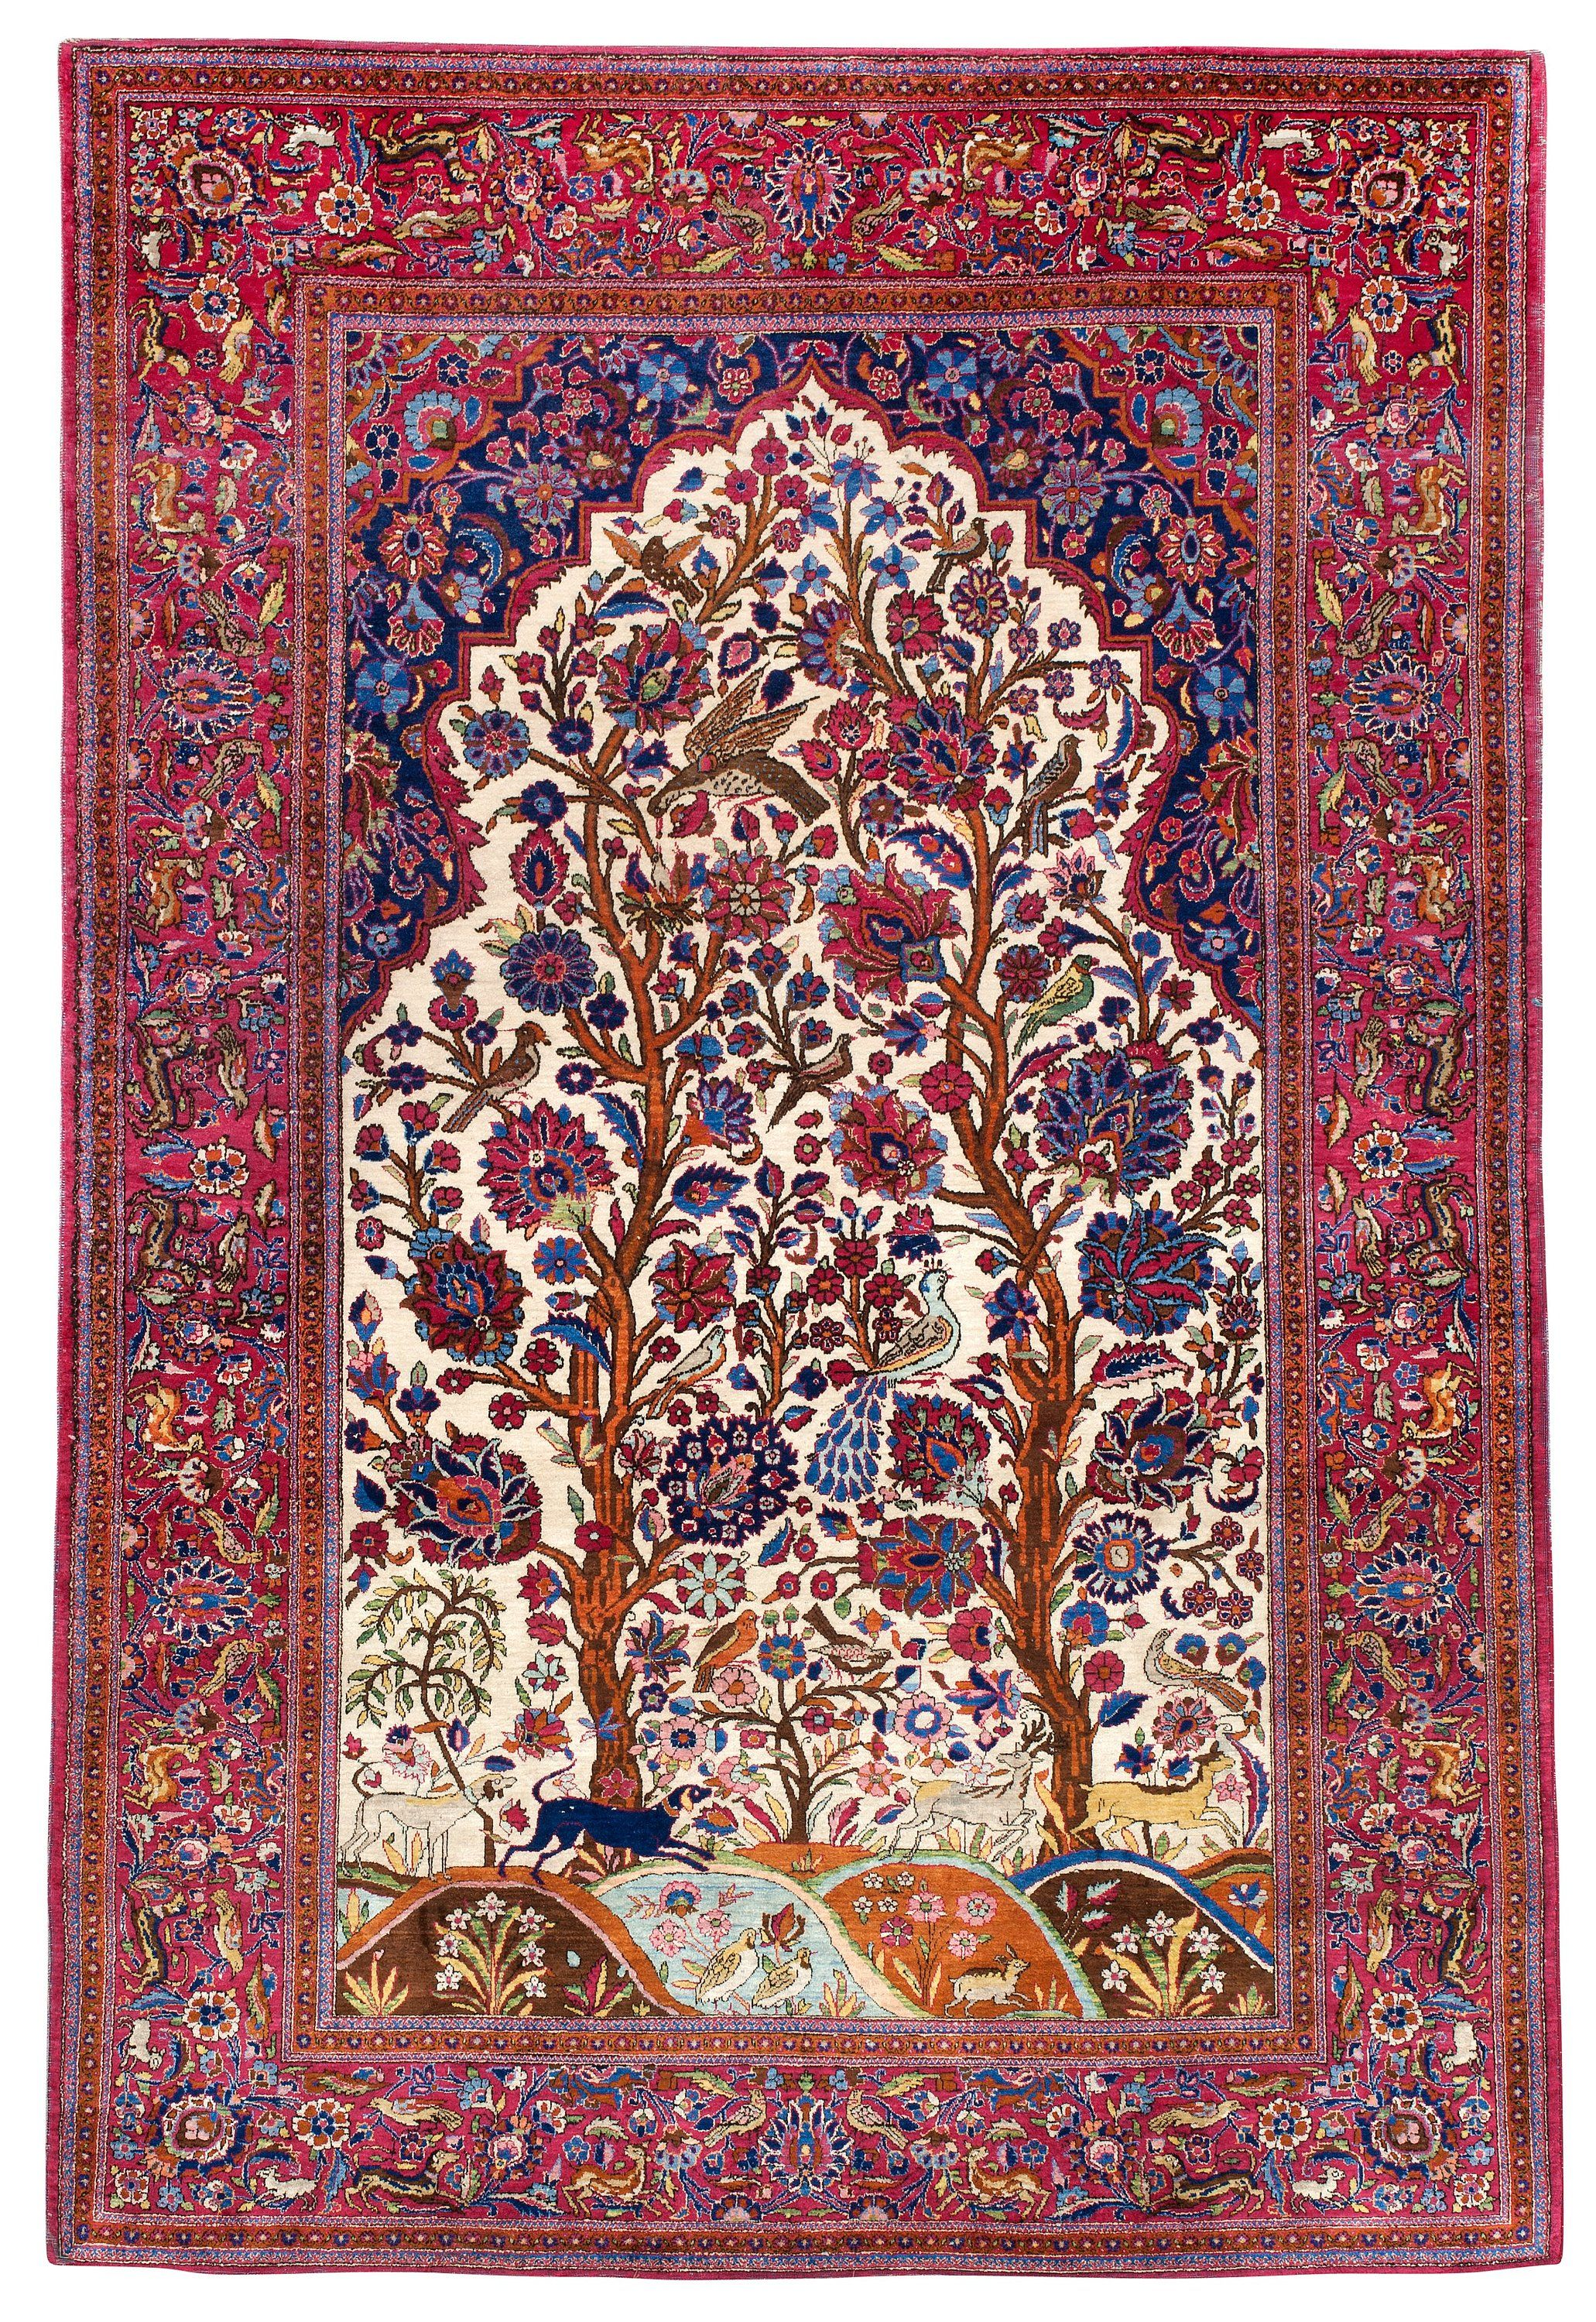 In One Section Of The Book Pi Asks For A Prayer Rug To Show His Love And Devotion 3 Religions